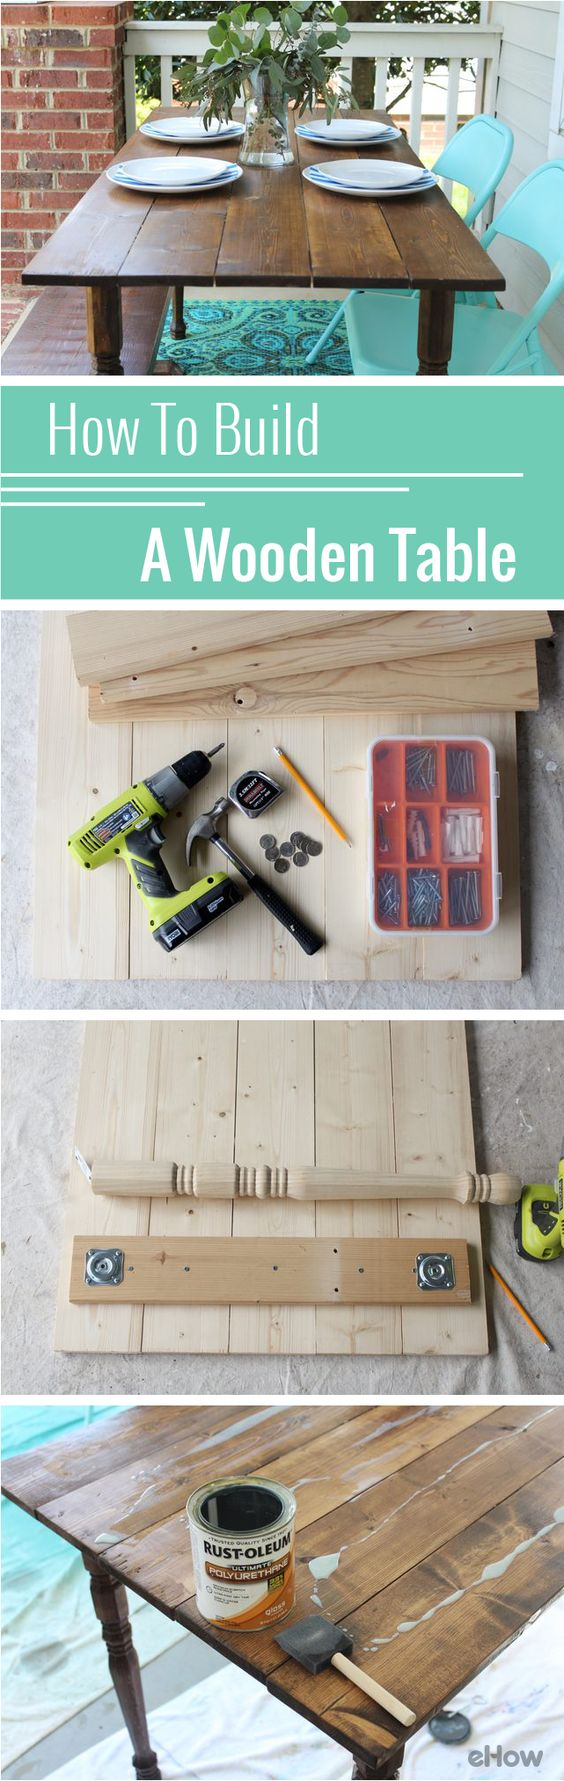 Building your own wooden table may sound intimidating, but this tutorial shows you everything you need to know with step by step photos and in-depth details! Give it a try: http://www.ehow.com/how_4460460_make-wooden-table.html?utm_source=pinterest.com&utm_medium=referral&utm_content=inline&utm_campaign=fanpage: